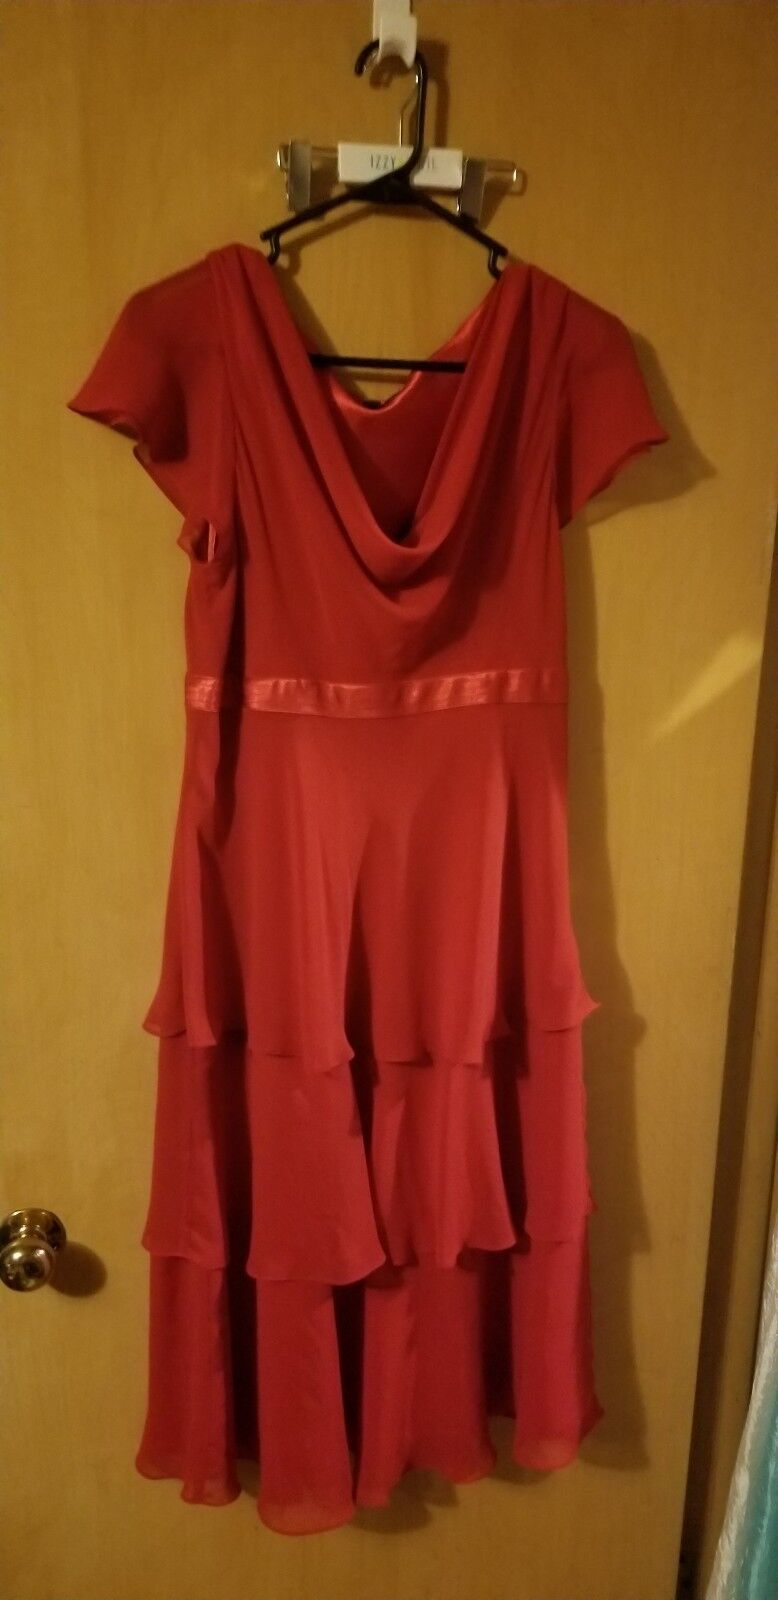 Vintage Bice 3 tiered layered  Ruffles Dress Red Dress Size 12